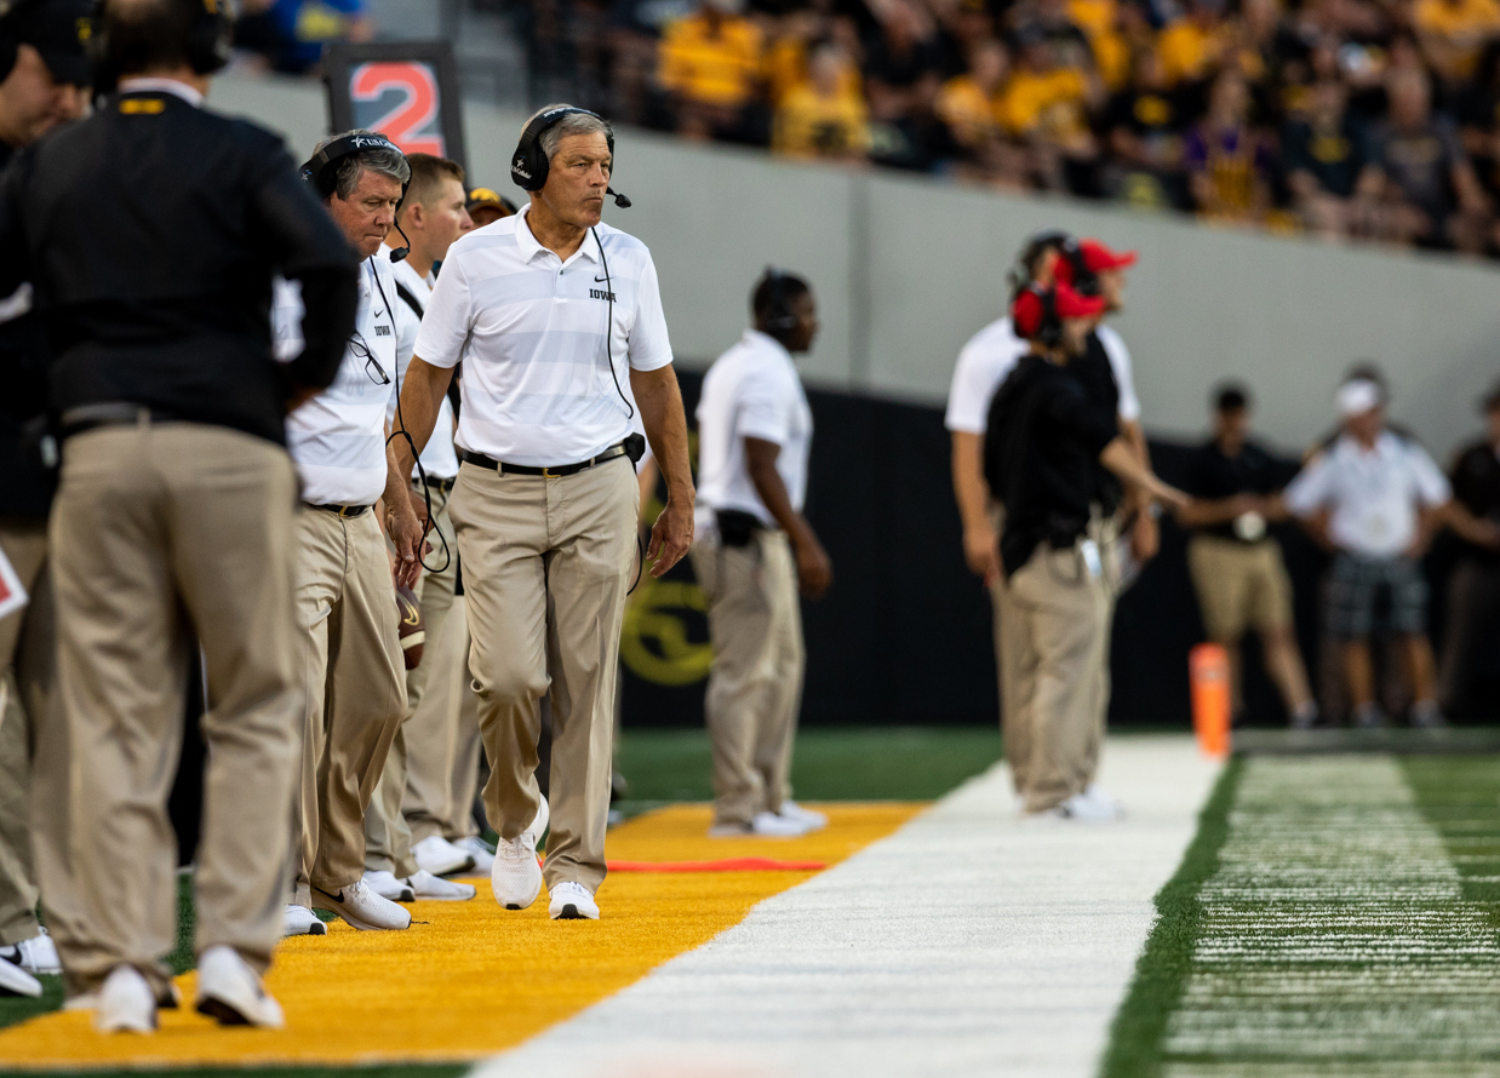 Iowa head coach Kirk Ferentz paces the sidelines during a game against Northern Iowa at Kinnick Stadium on Saturday, Sep. 15, 2018. The Hawkeyes defeated the Panthers 38–14. (David Harmantas/The Daily Iowan)